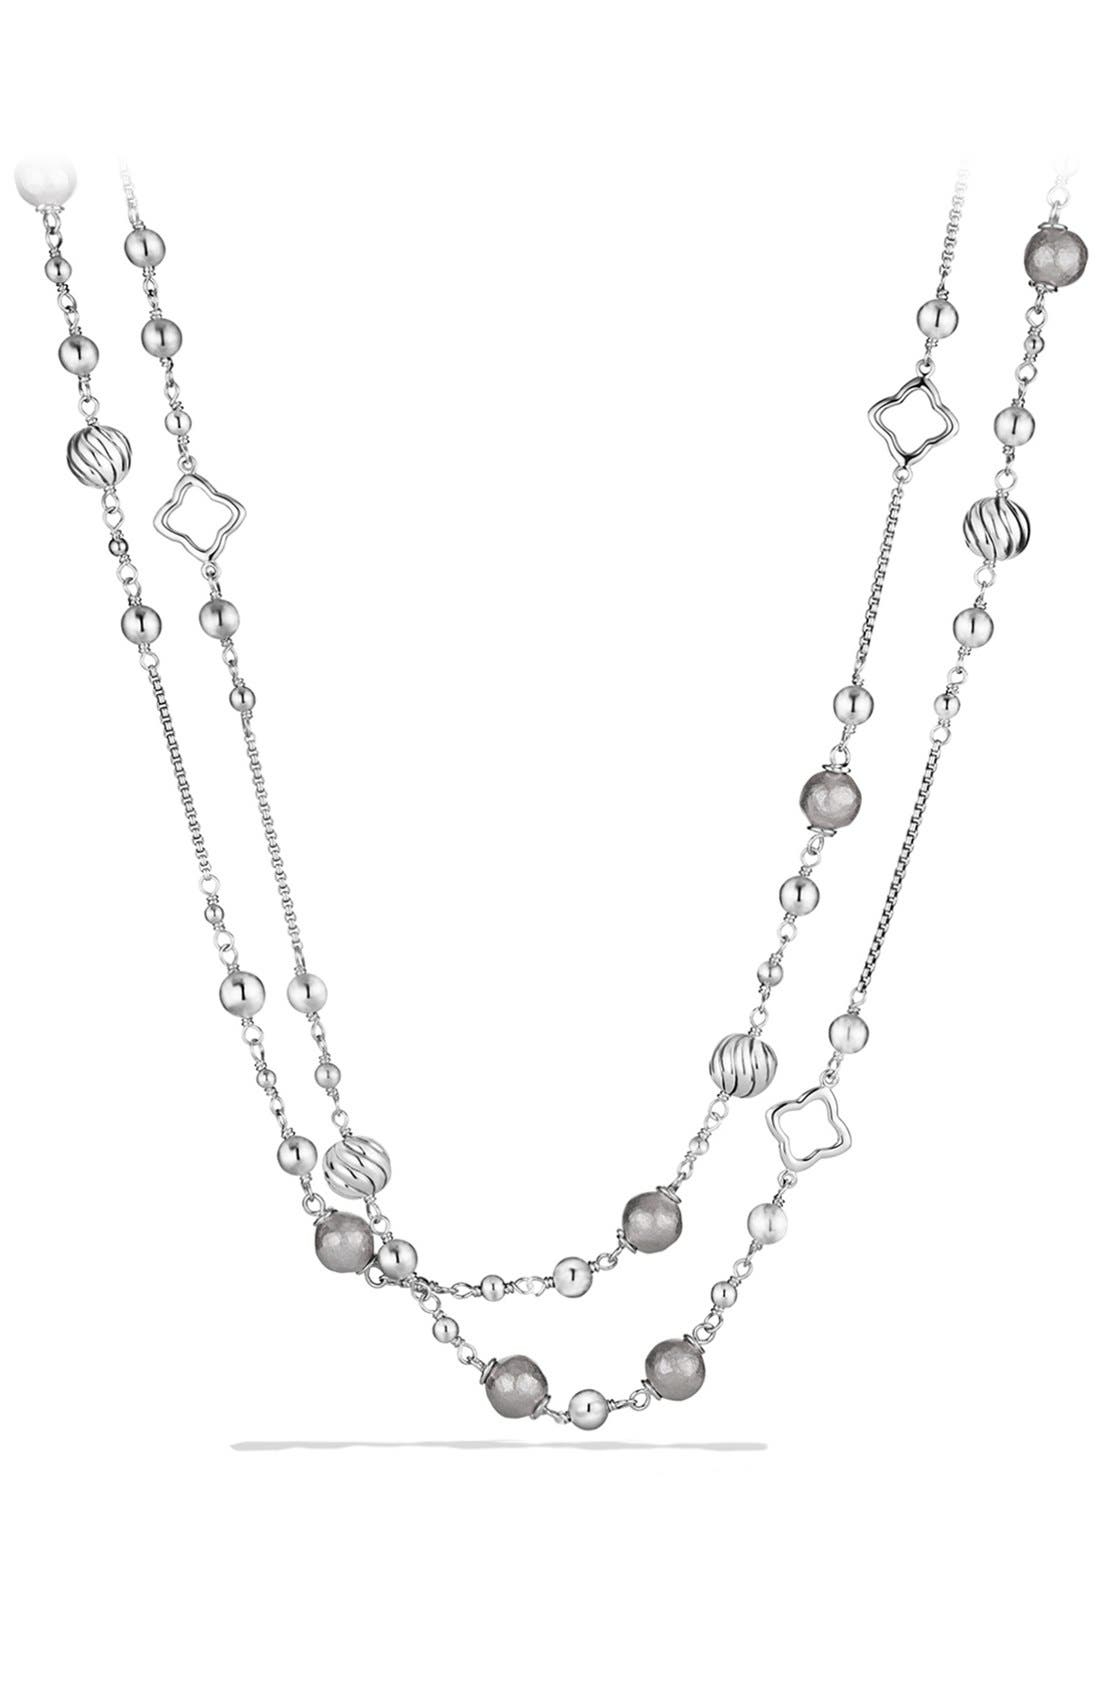 Alternate Image 1 Selected - David Yurman 'DY Elements' Chain Necklace